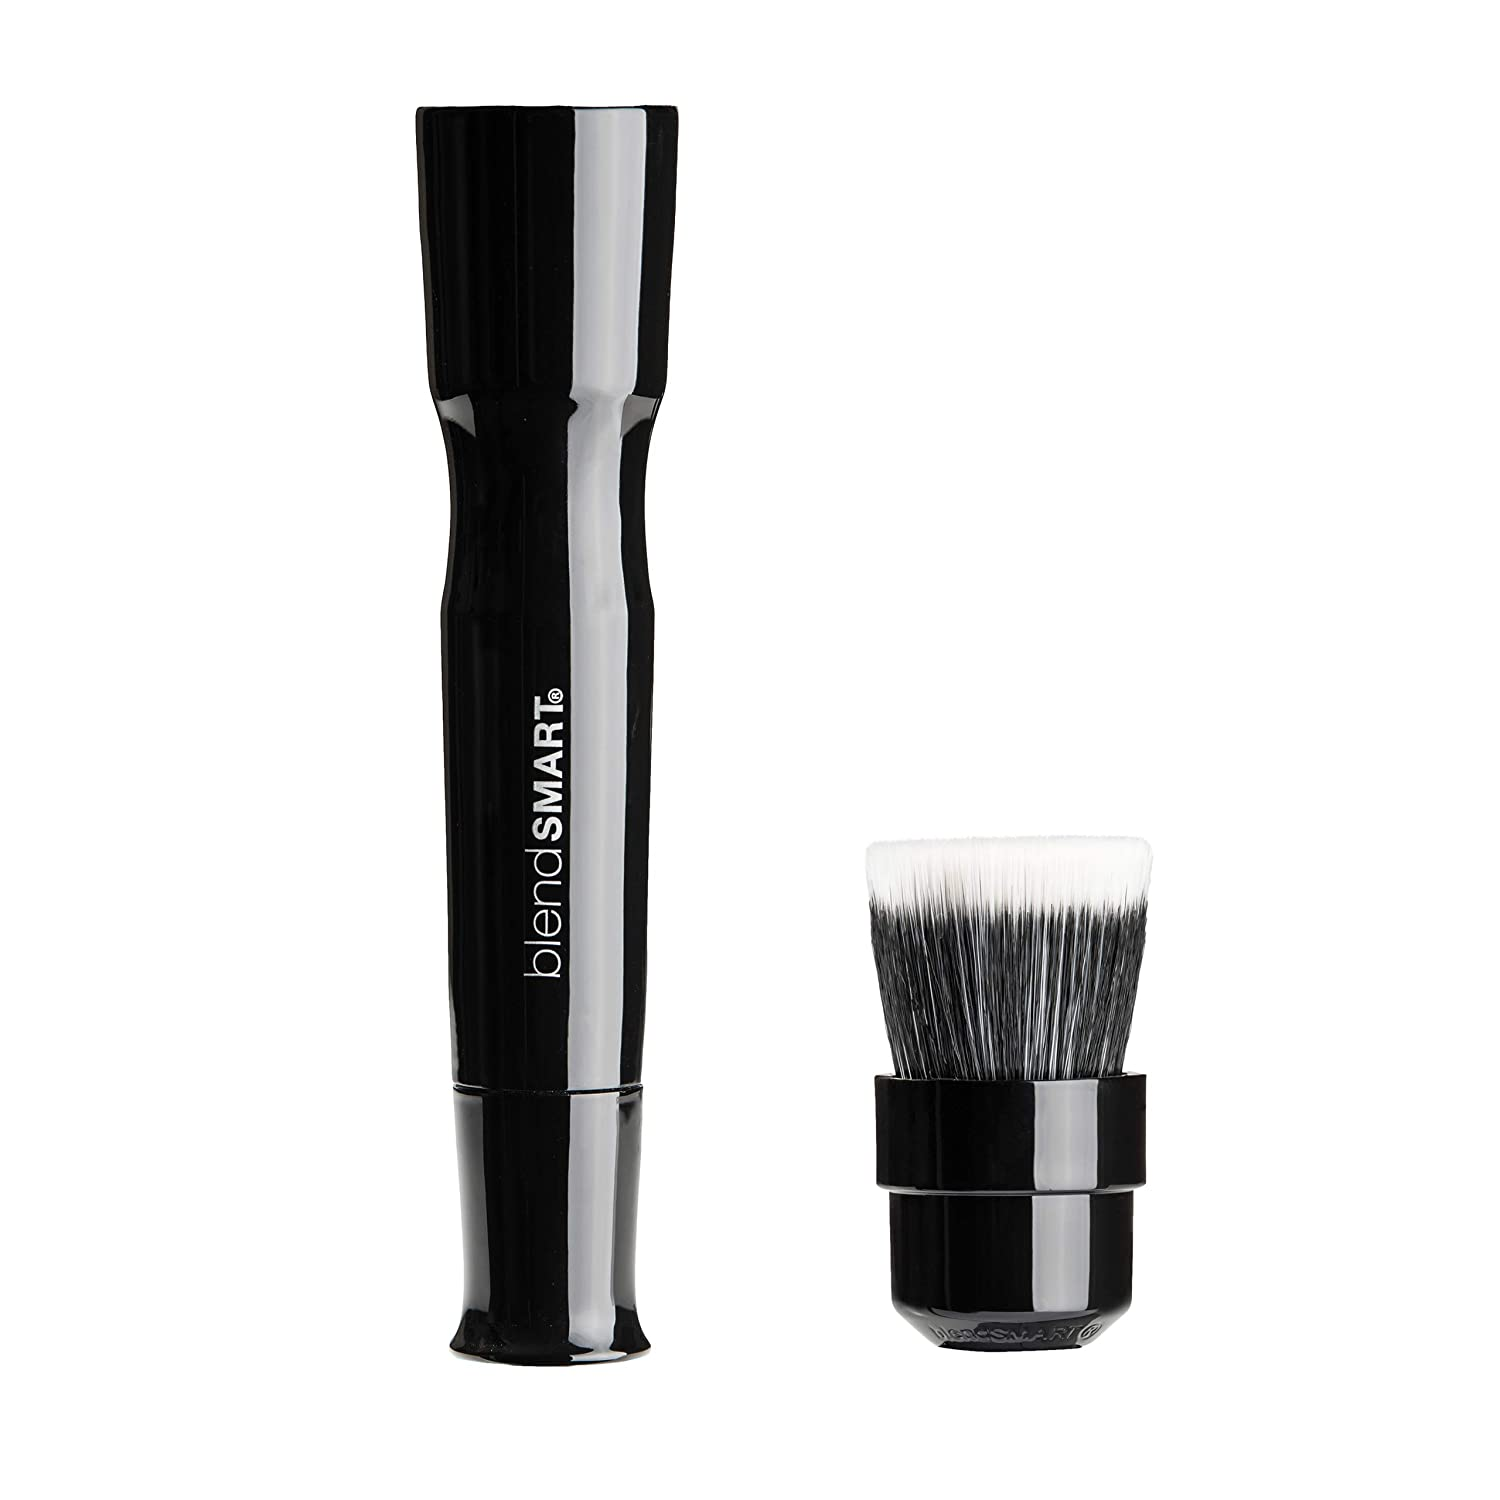 blendSMART2: Powered Foundation Makeup Brush With Spin Head For Blending, Contouring and Airbrush Finish: Premium Beauty